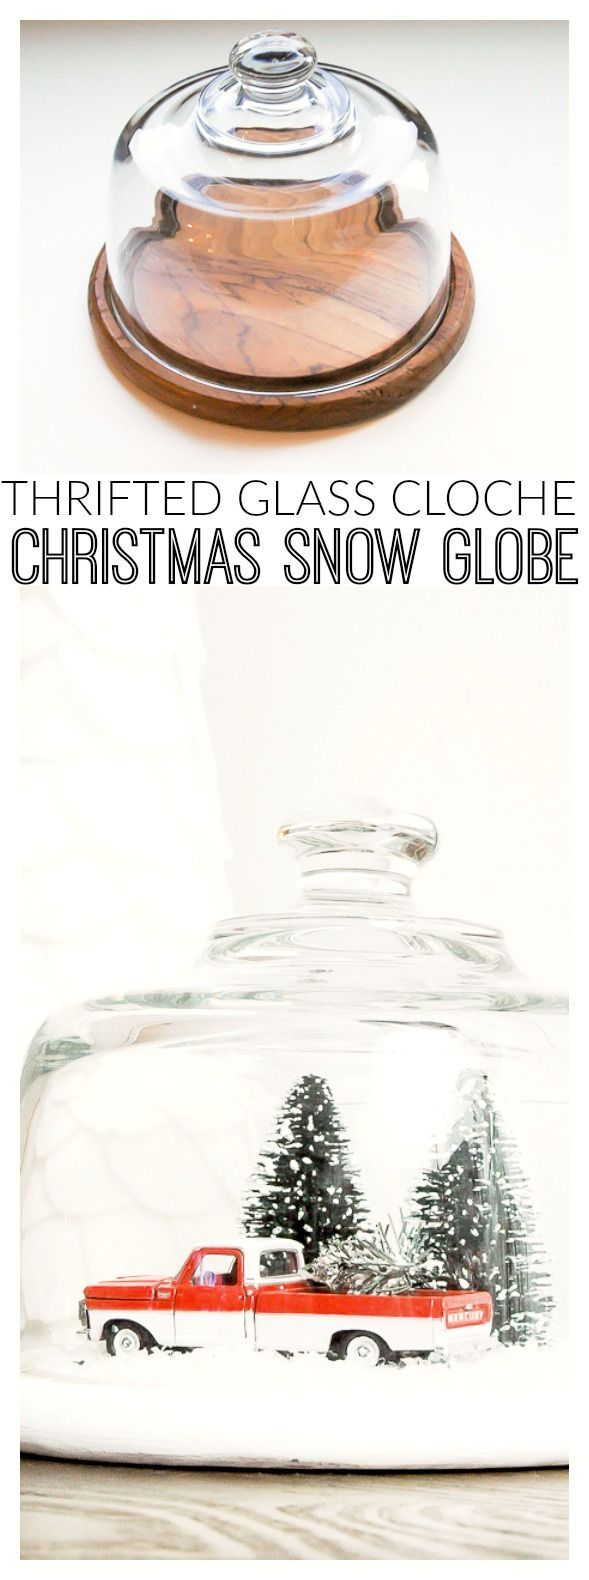 A $5.00 thrifted glass cloche gets turned into the perfect Christmas snow globe! http://www.littlehouseoffour.com